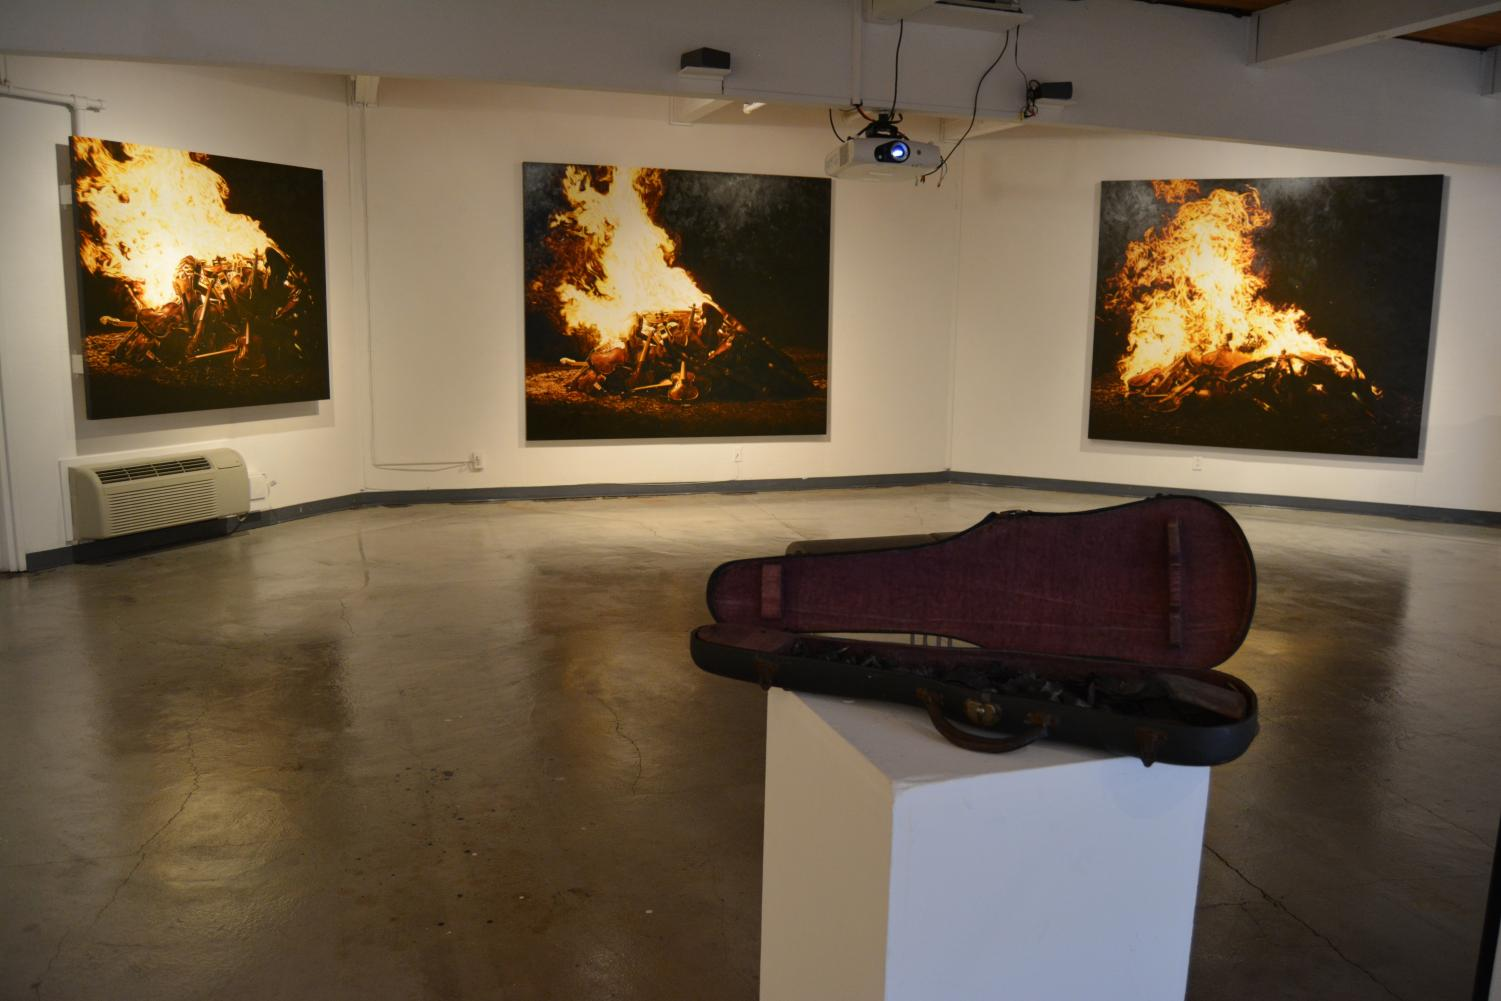 DVC art gallery showing paintings and burnt violin for art show at Pleasant Hill campus. (Samantha Laurey/The Inquirer).